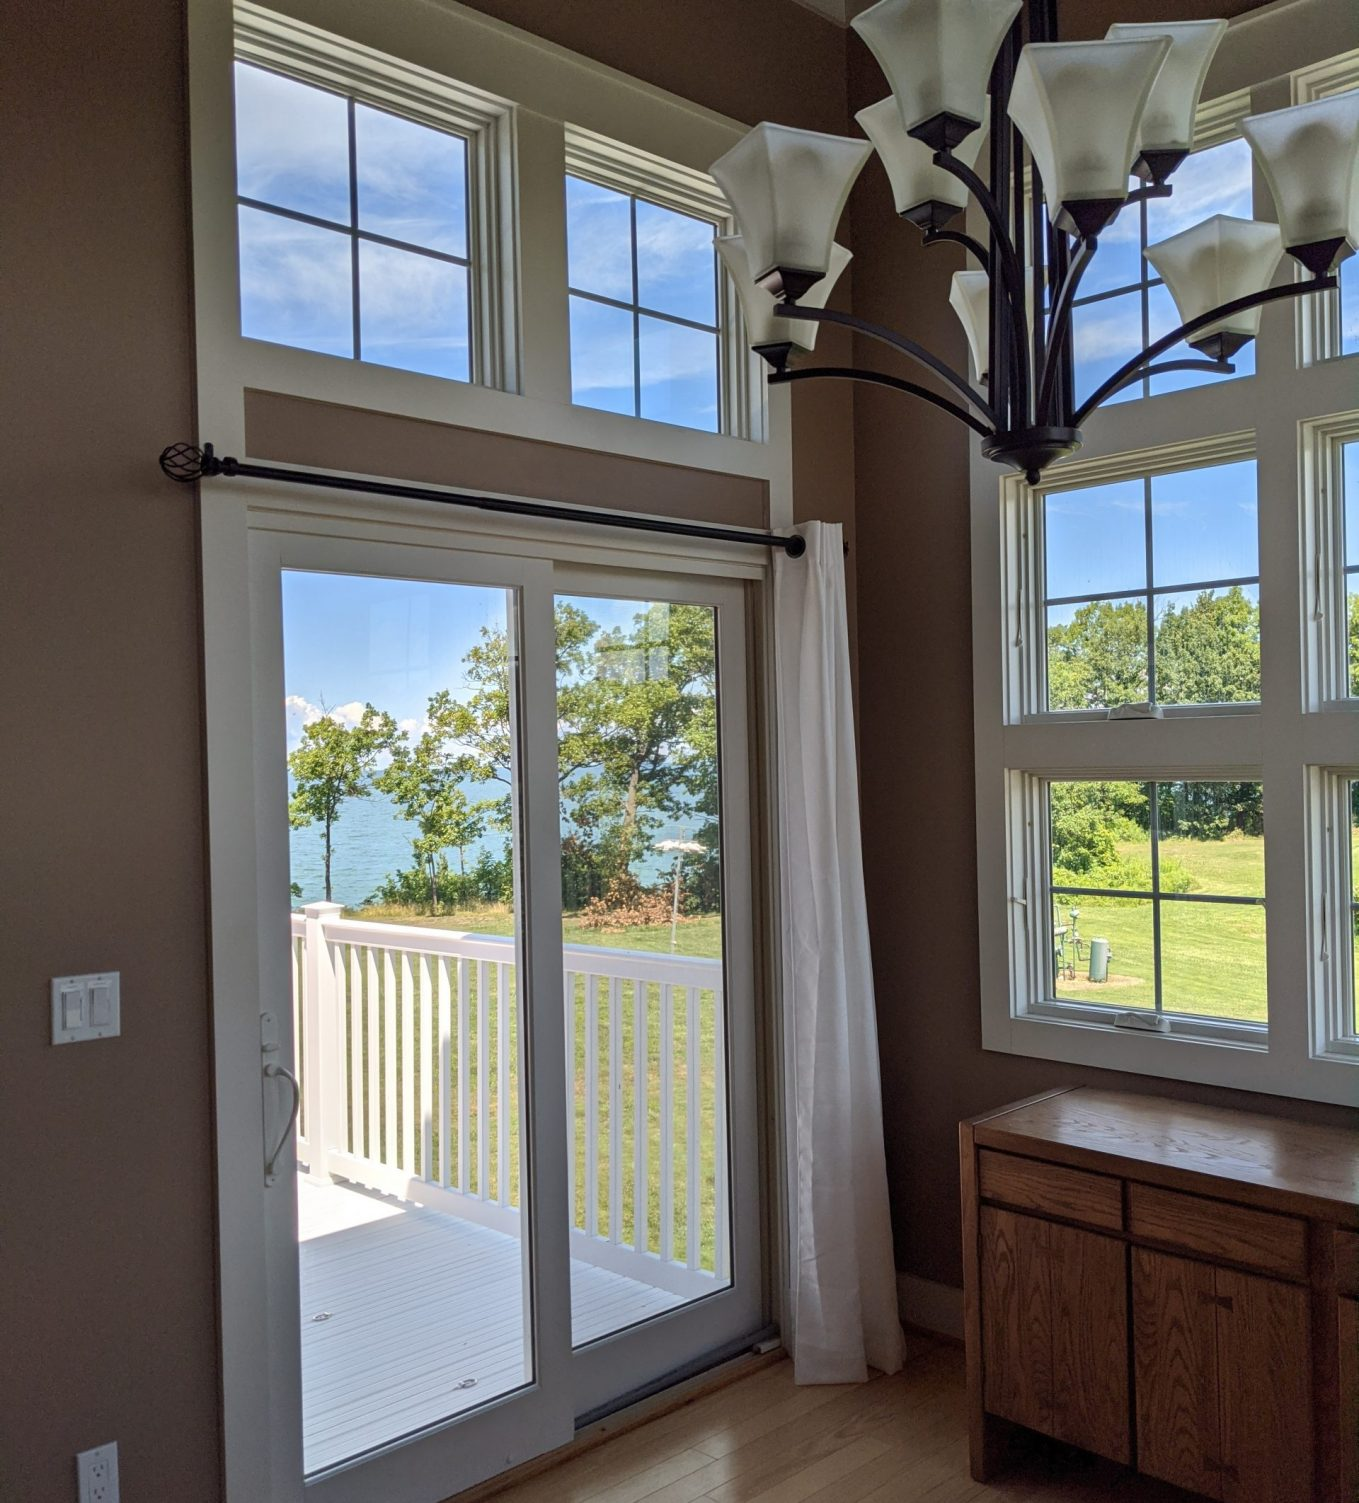 3M PR60 window film Used For Heat and Glare Home Improvement Project in Buffalo, New York Lake Home 2